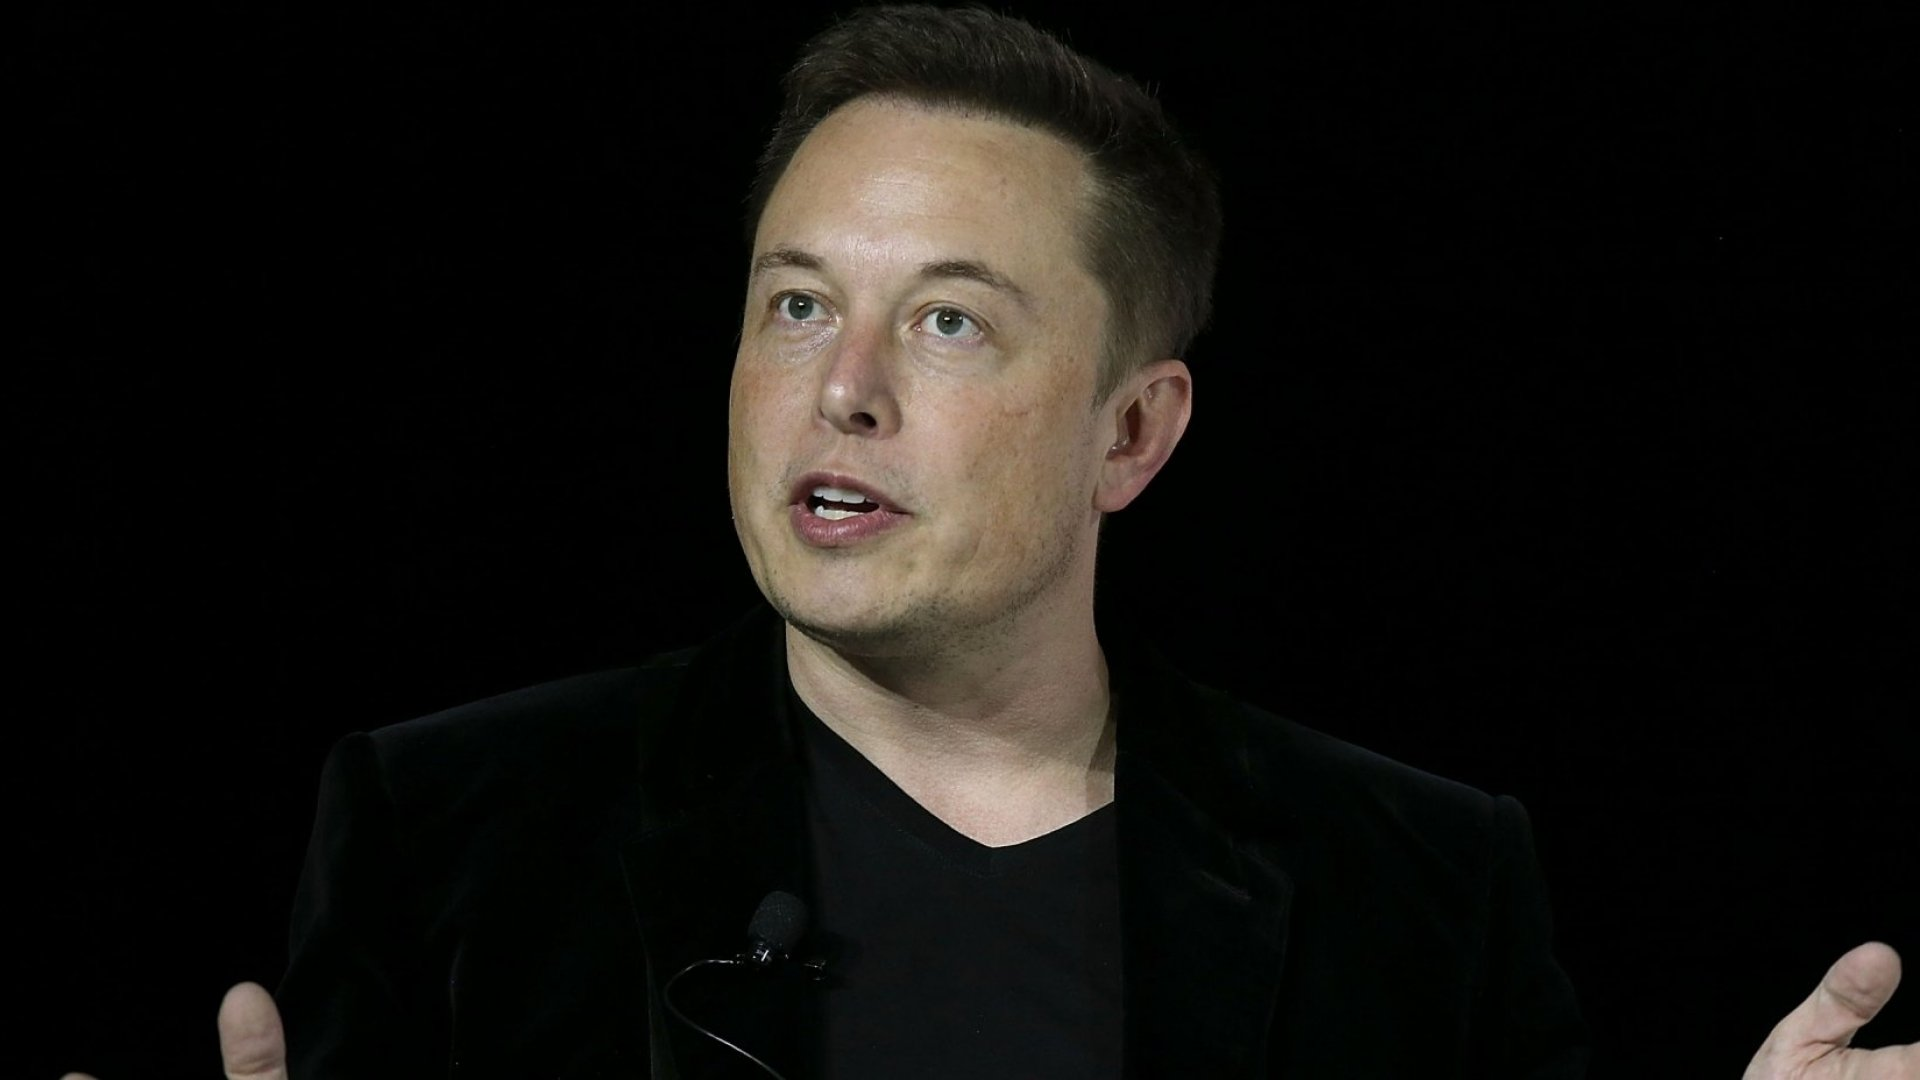 The Power of Emotional Intelligence Is on Full Display With Elon Musk, Jeff Bezos, and Ursula Burns